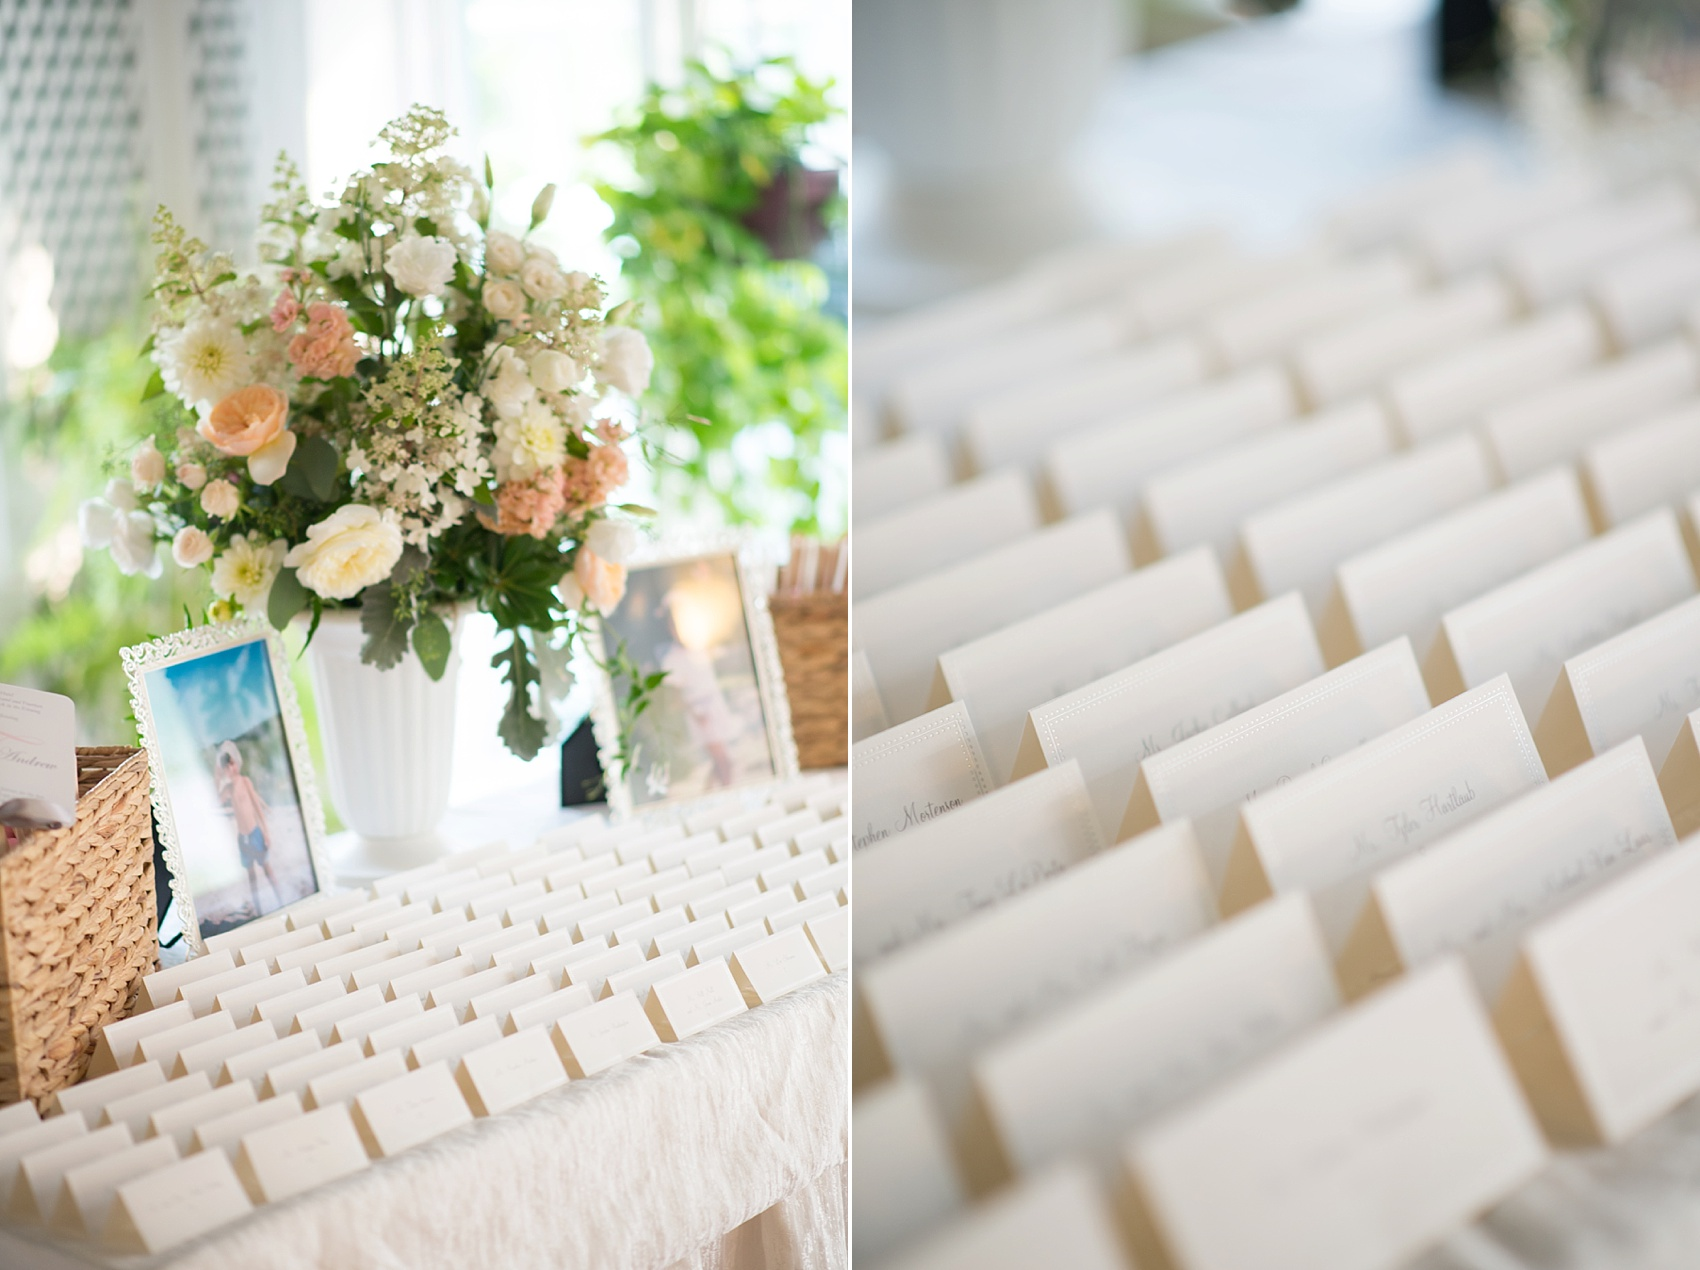 Wedding escort cards at the Conservatory at The Madison Hotel, New Jersey. Photos by Mikkel Paige Photography.